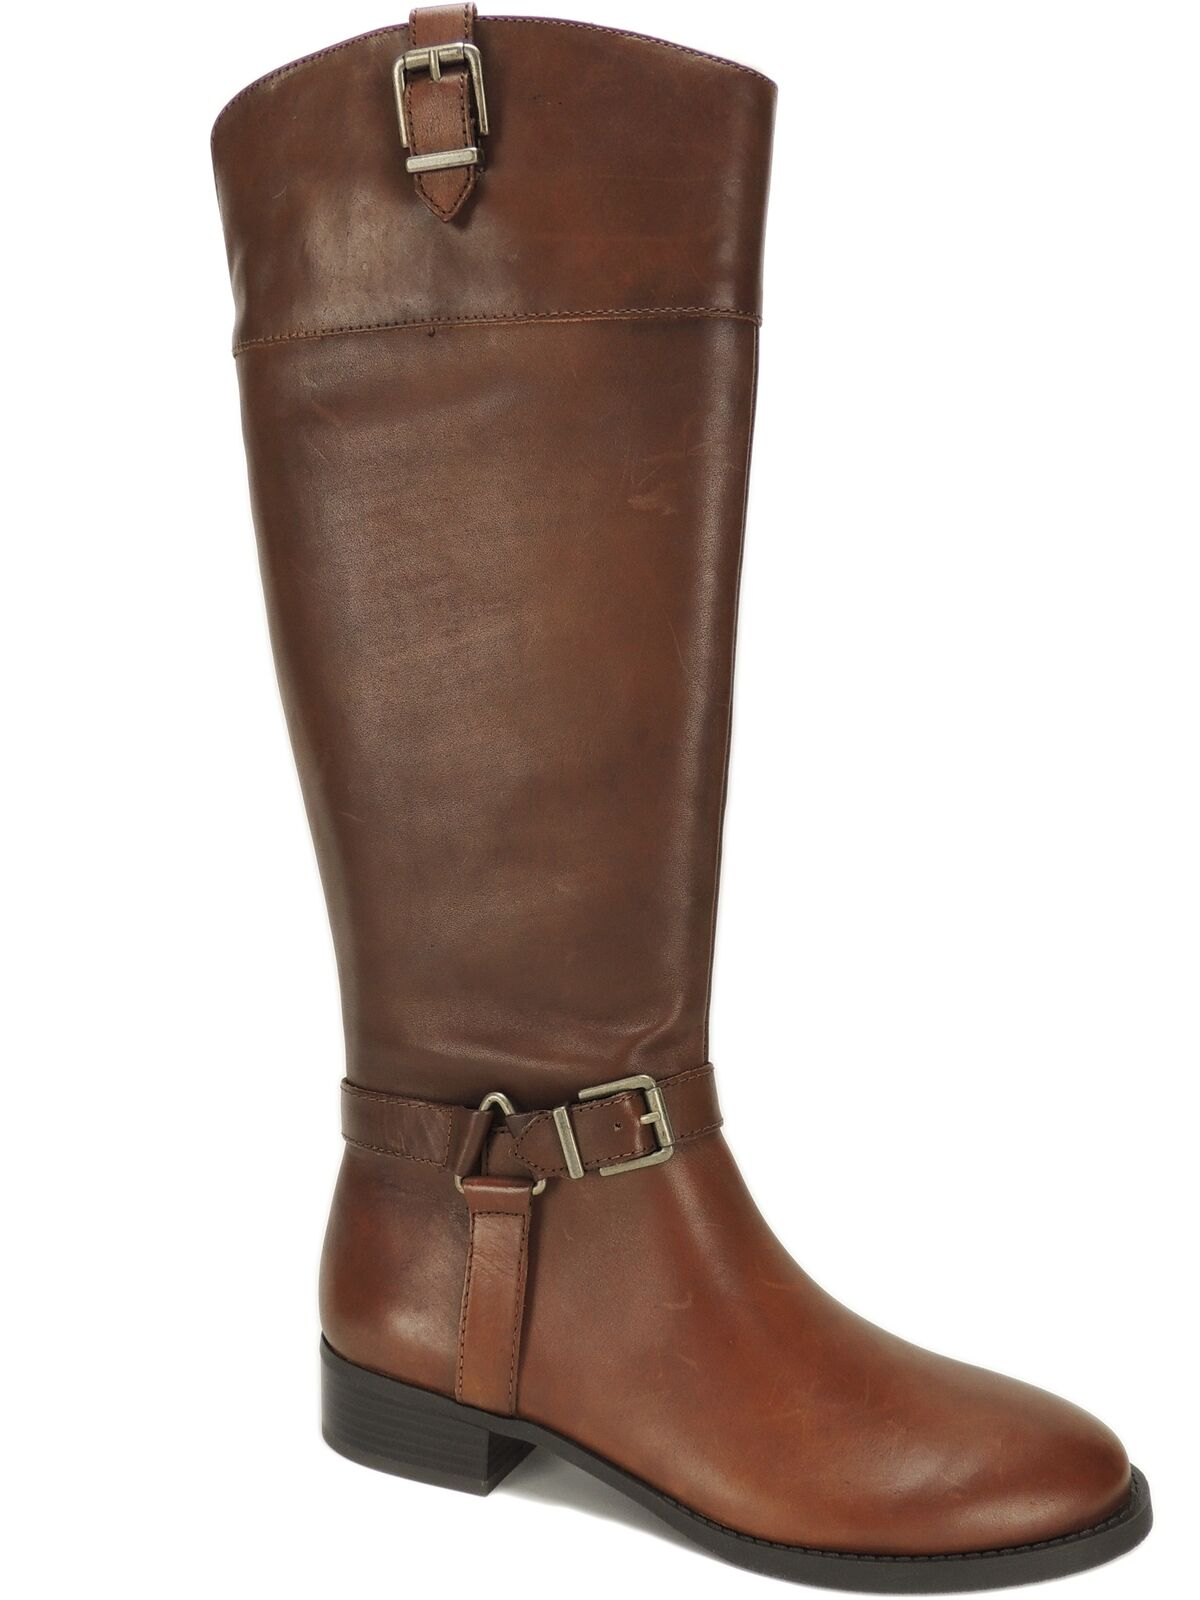 INC International Concepts Women's Fedee Tall Boots Cognac Leather Size 10.5 M